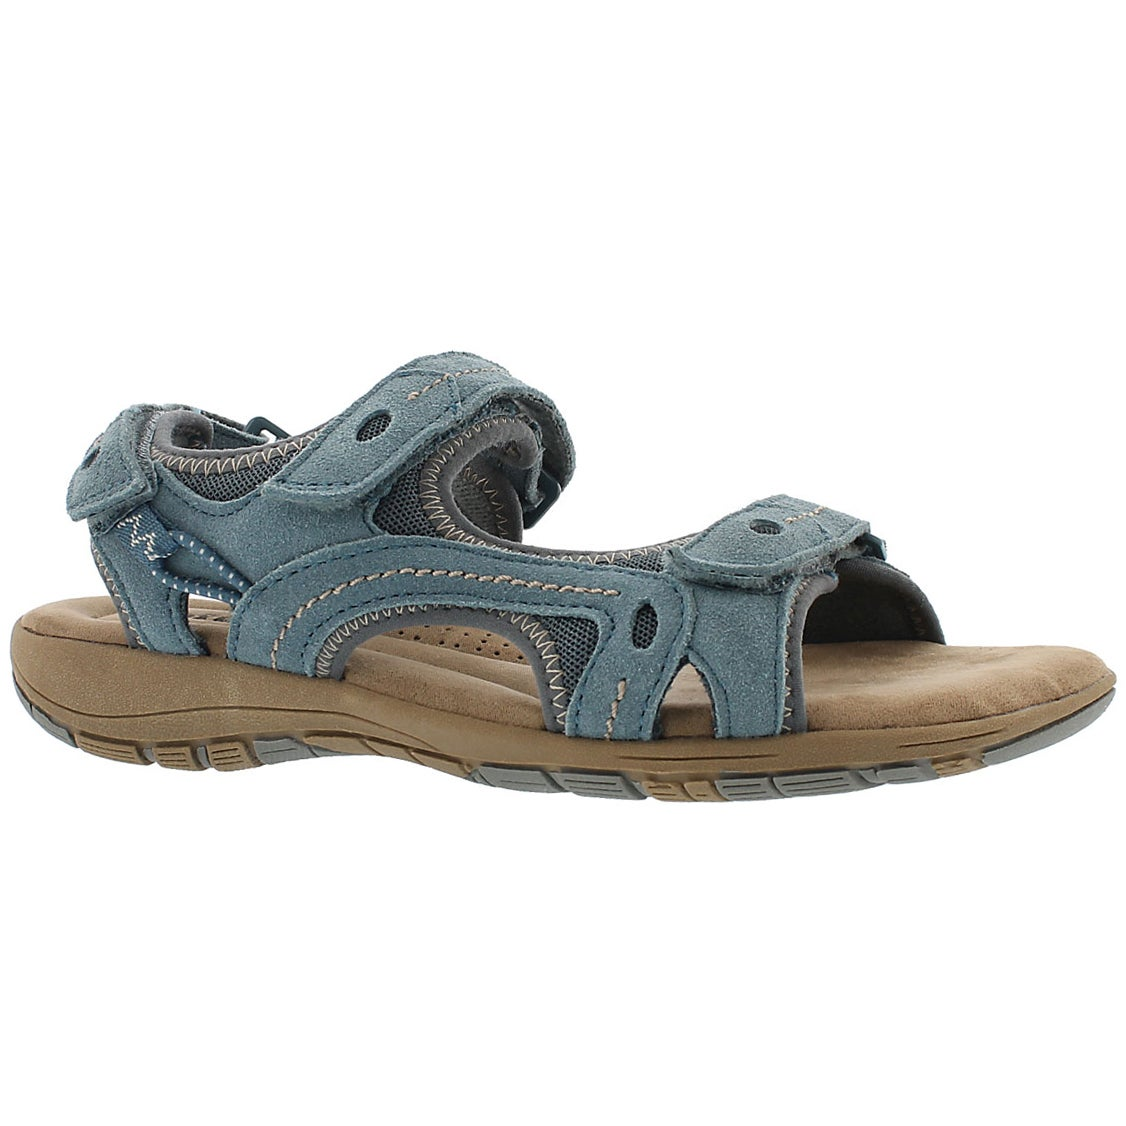 Women's GLADYS blue 3-strap memory foam sandals